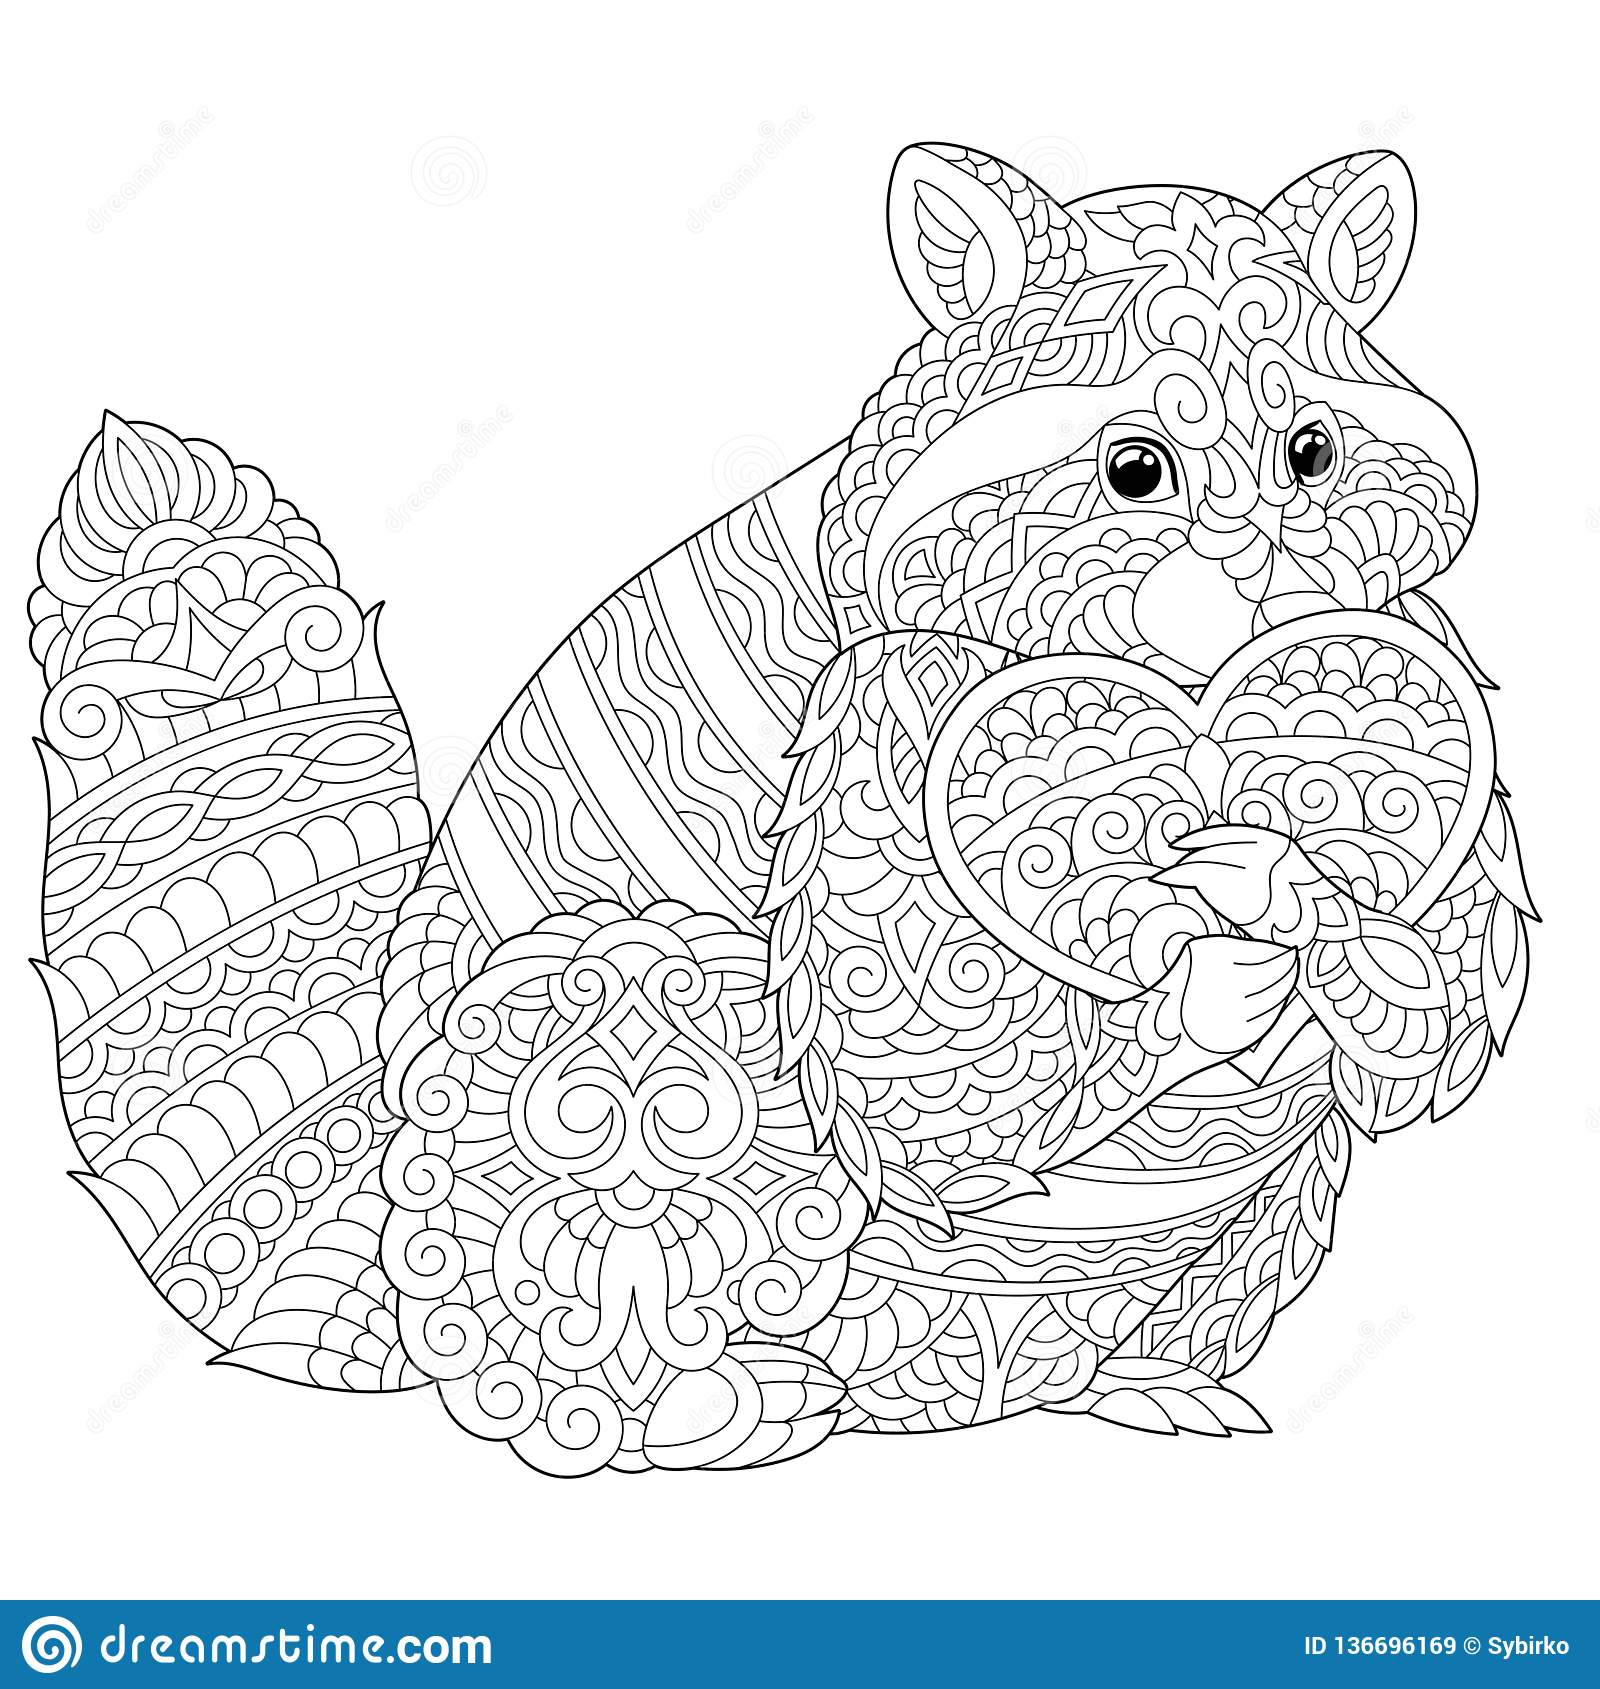 Zentangle Raccoon Coloring Page Stock Vector Illustration Of Fauna Forest 136696169